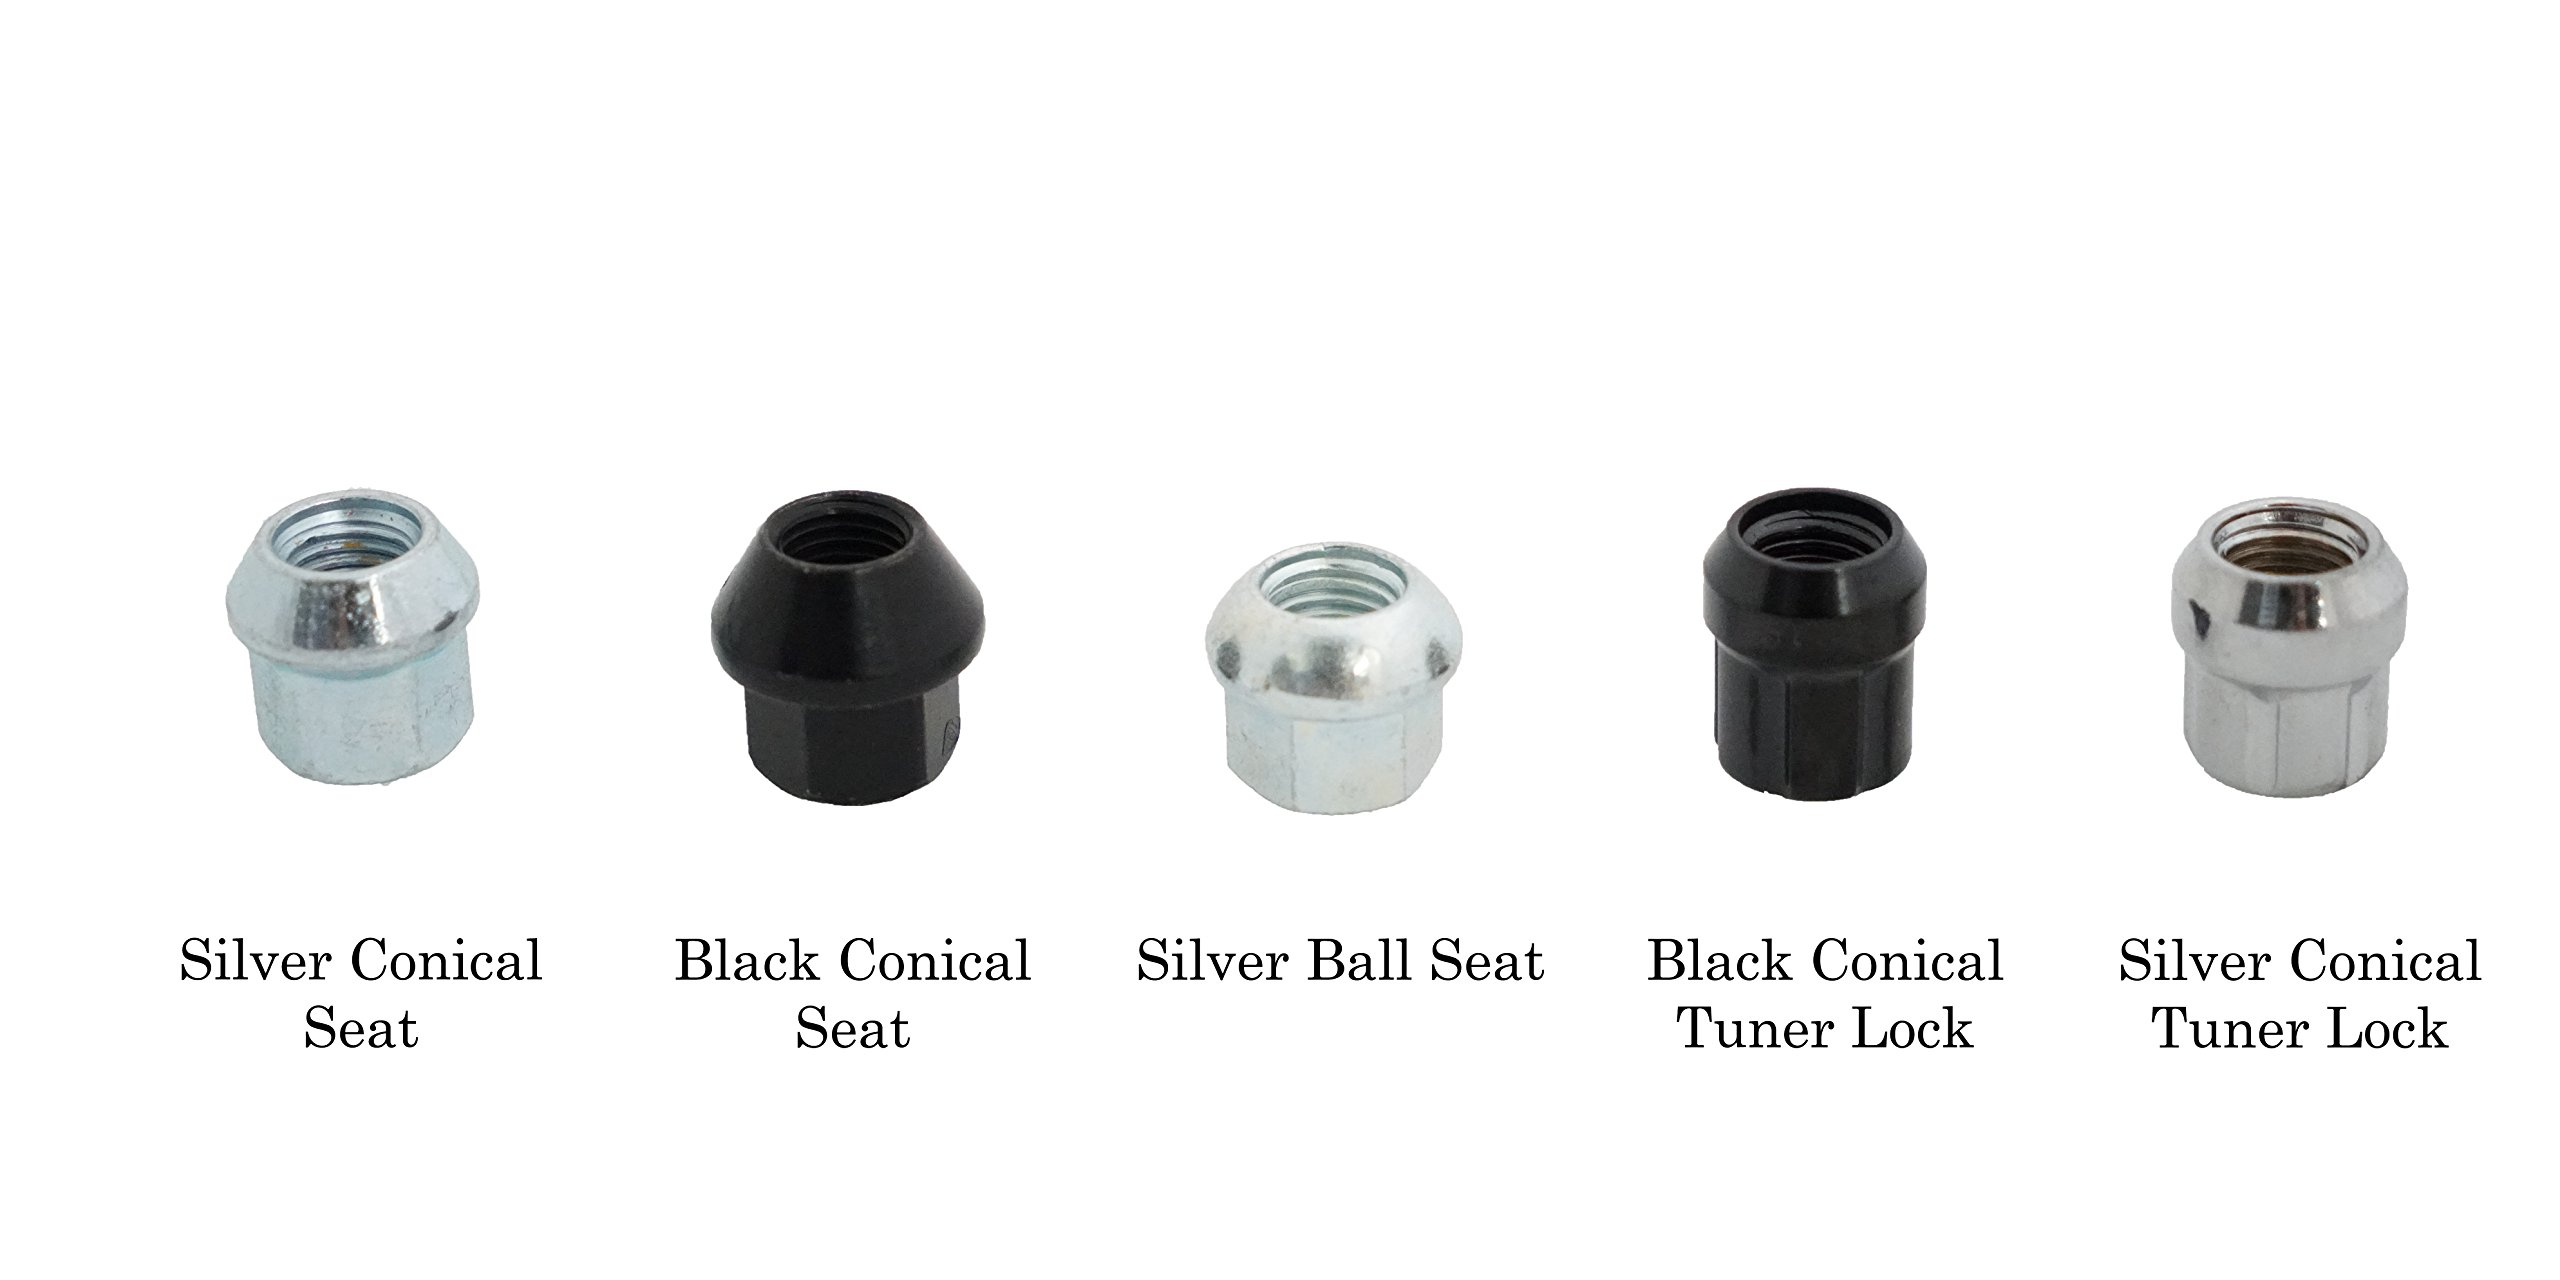 Motorsport Hardware (AUDI/VW) 16-Piece Wheel Stud Adapter/Conversion 78mm Length (14x1.5 to 12x1.5) with Silver Conical Seat Nuts by Motorsport Hardware (Image #1)